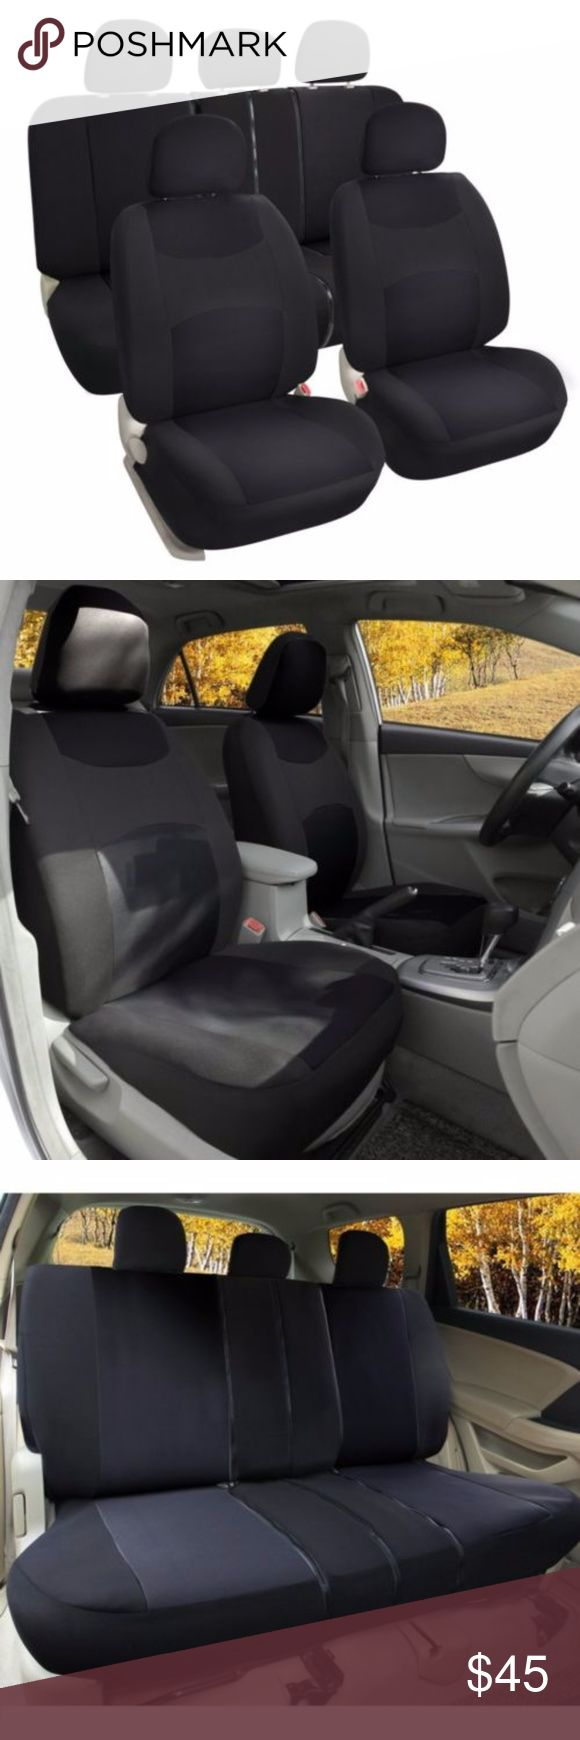 Bucket seat cover set airbag compatible black nwt